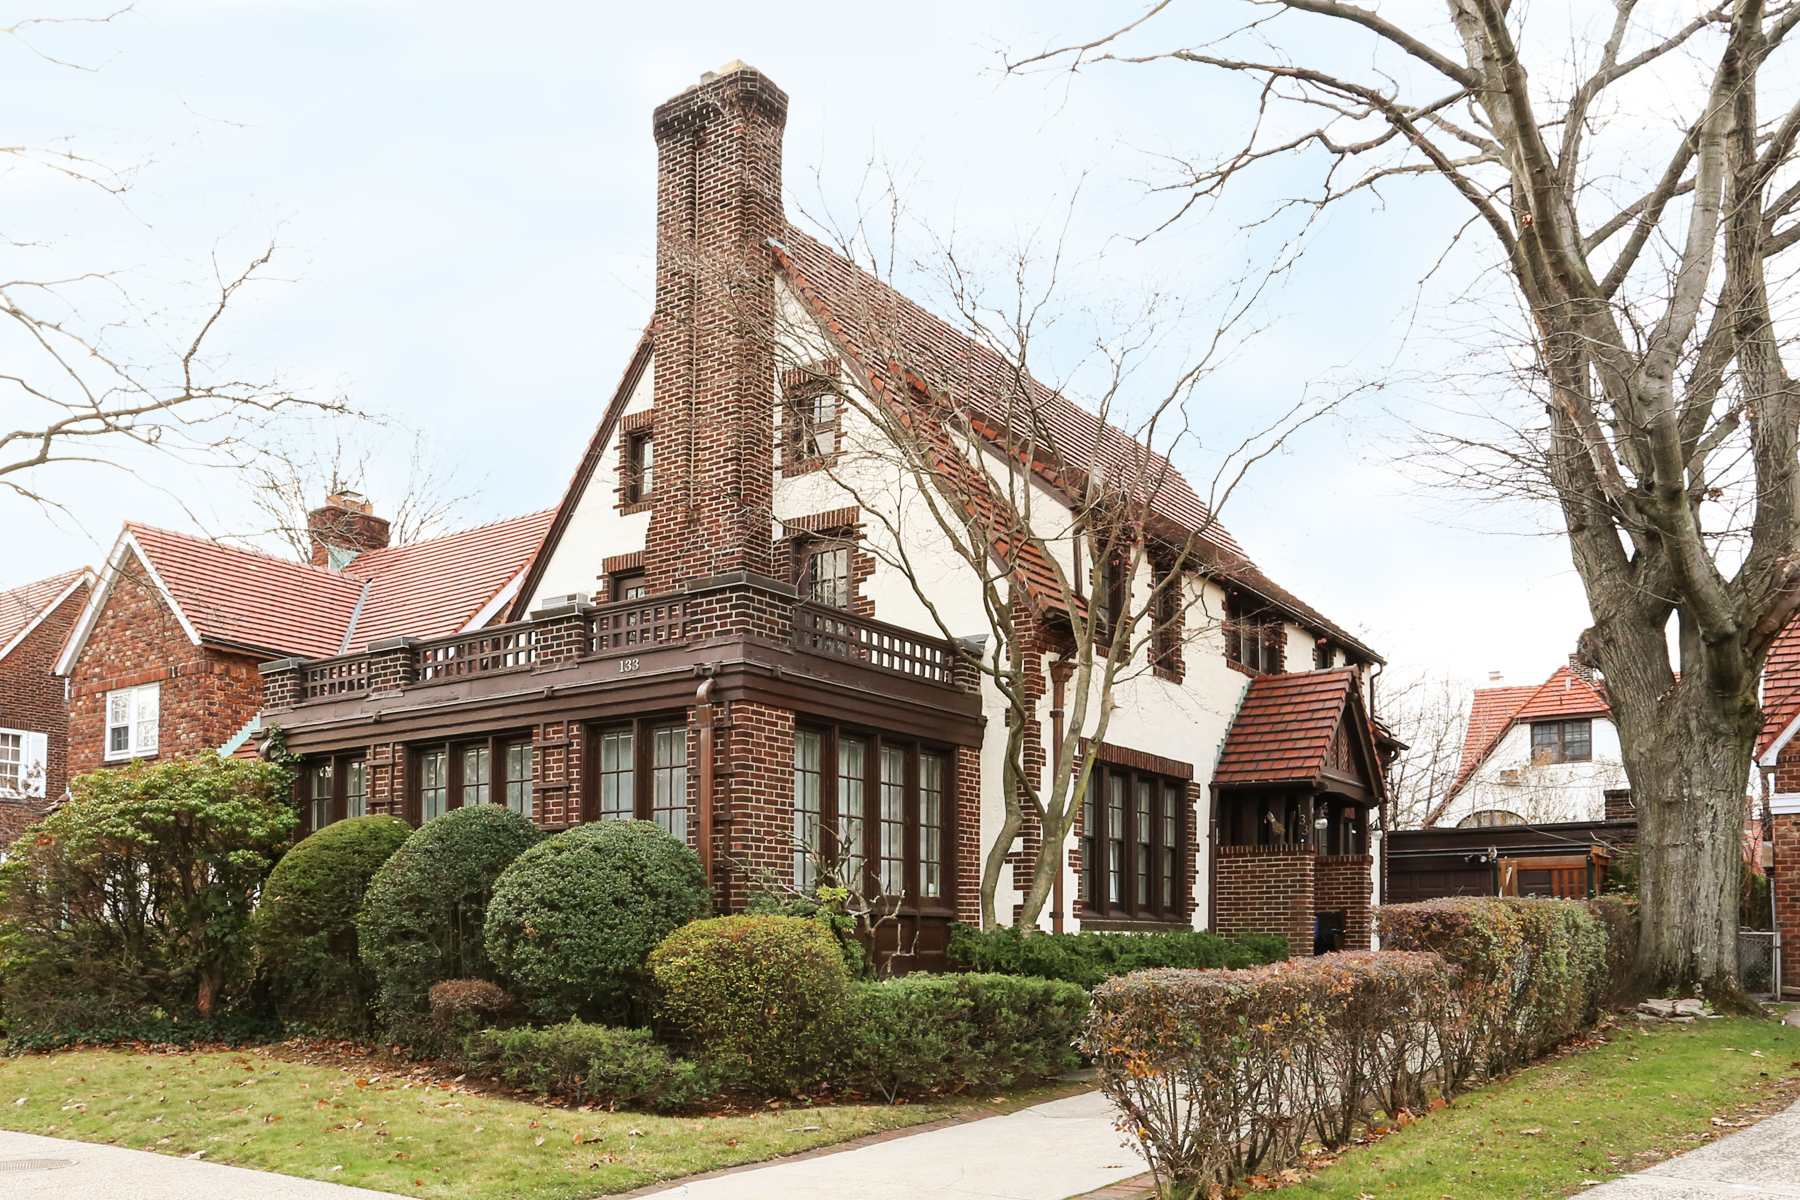 """Single Family Home for Rent at """"CENTER OF THE GARDENS RENTAL"""" Forest Hills, New York 11375 United States"""